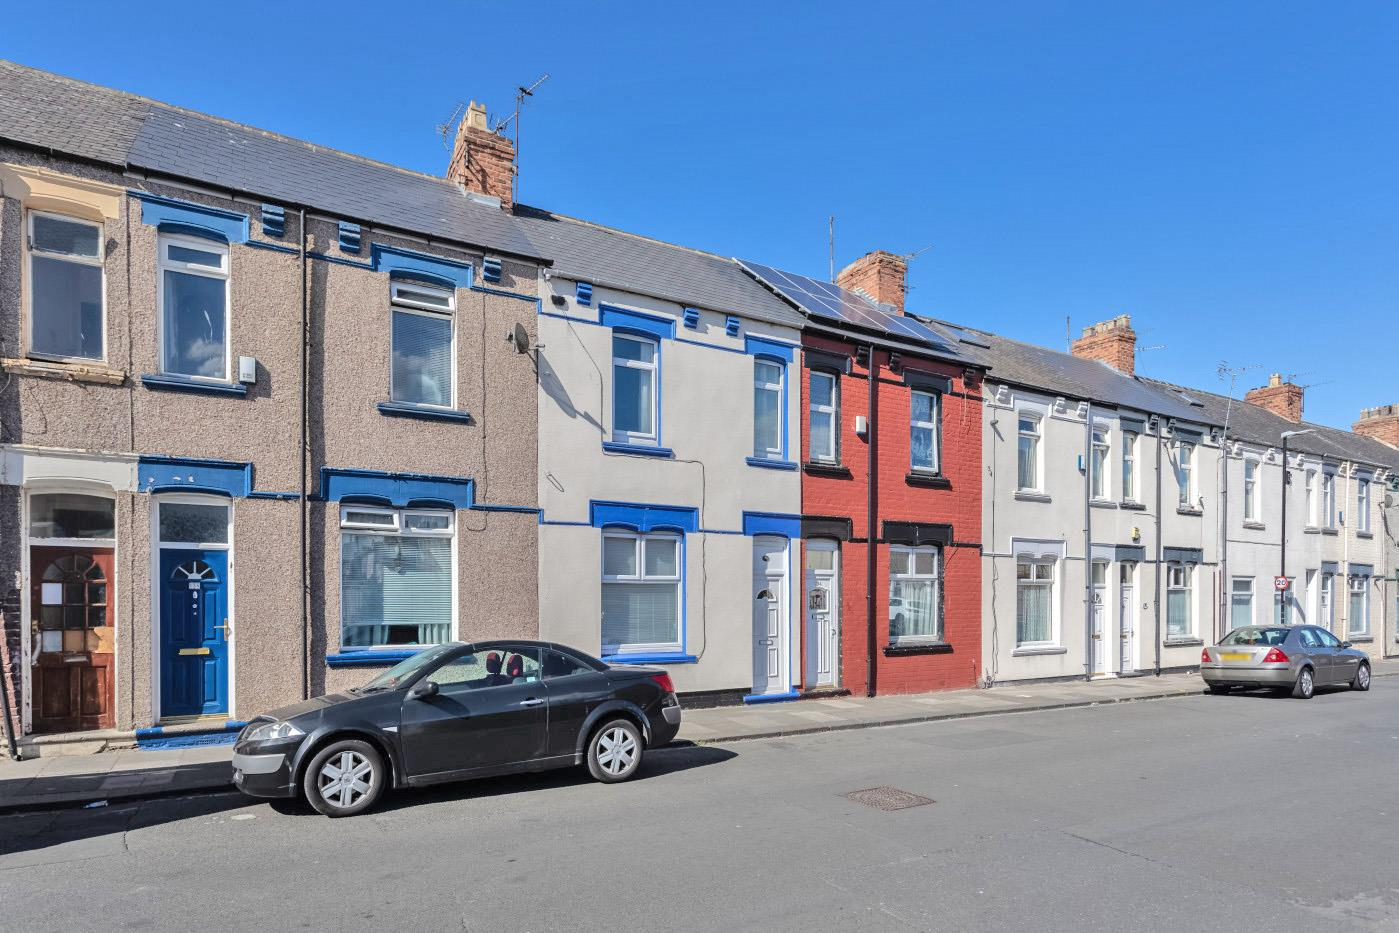 A three-bed in Hartlepool is on sale for £25,000. Image: Zoopla